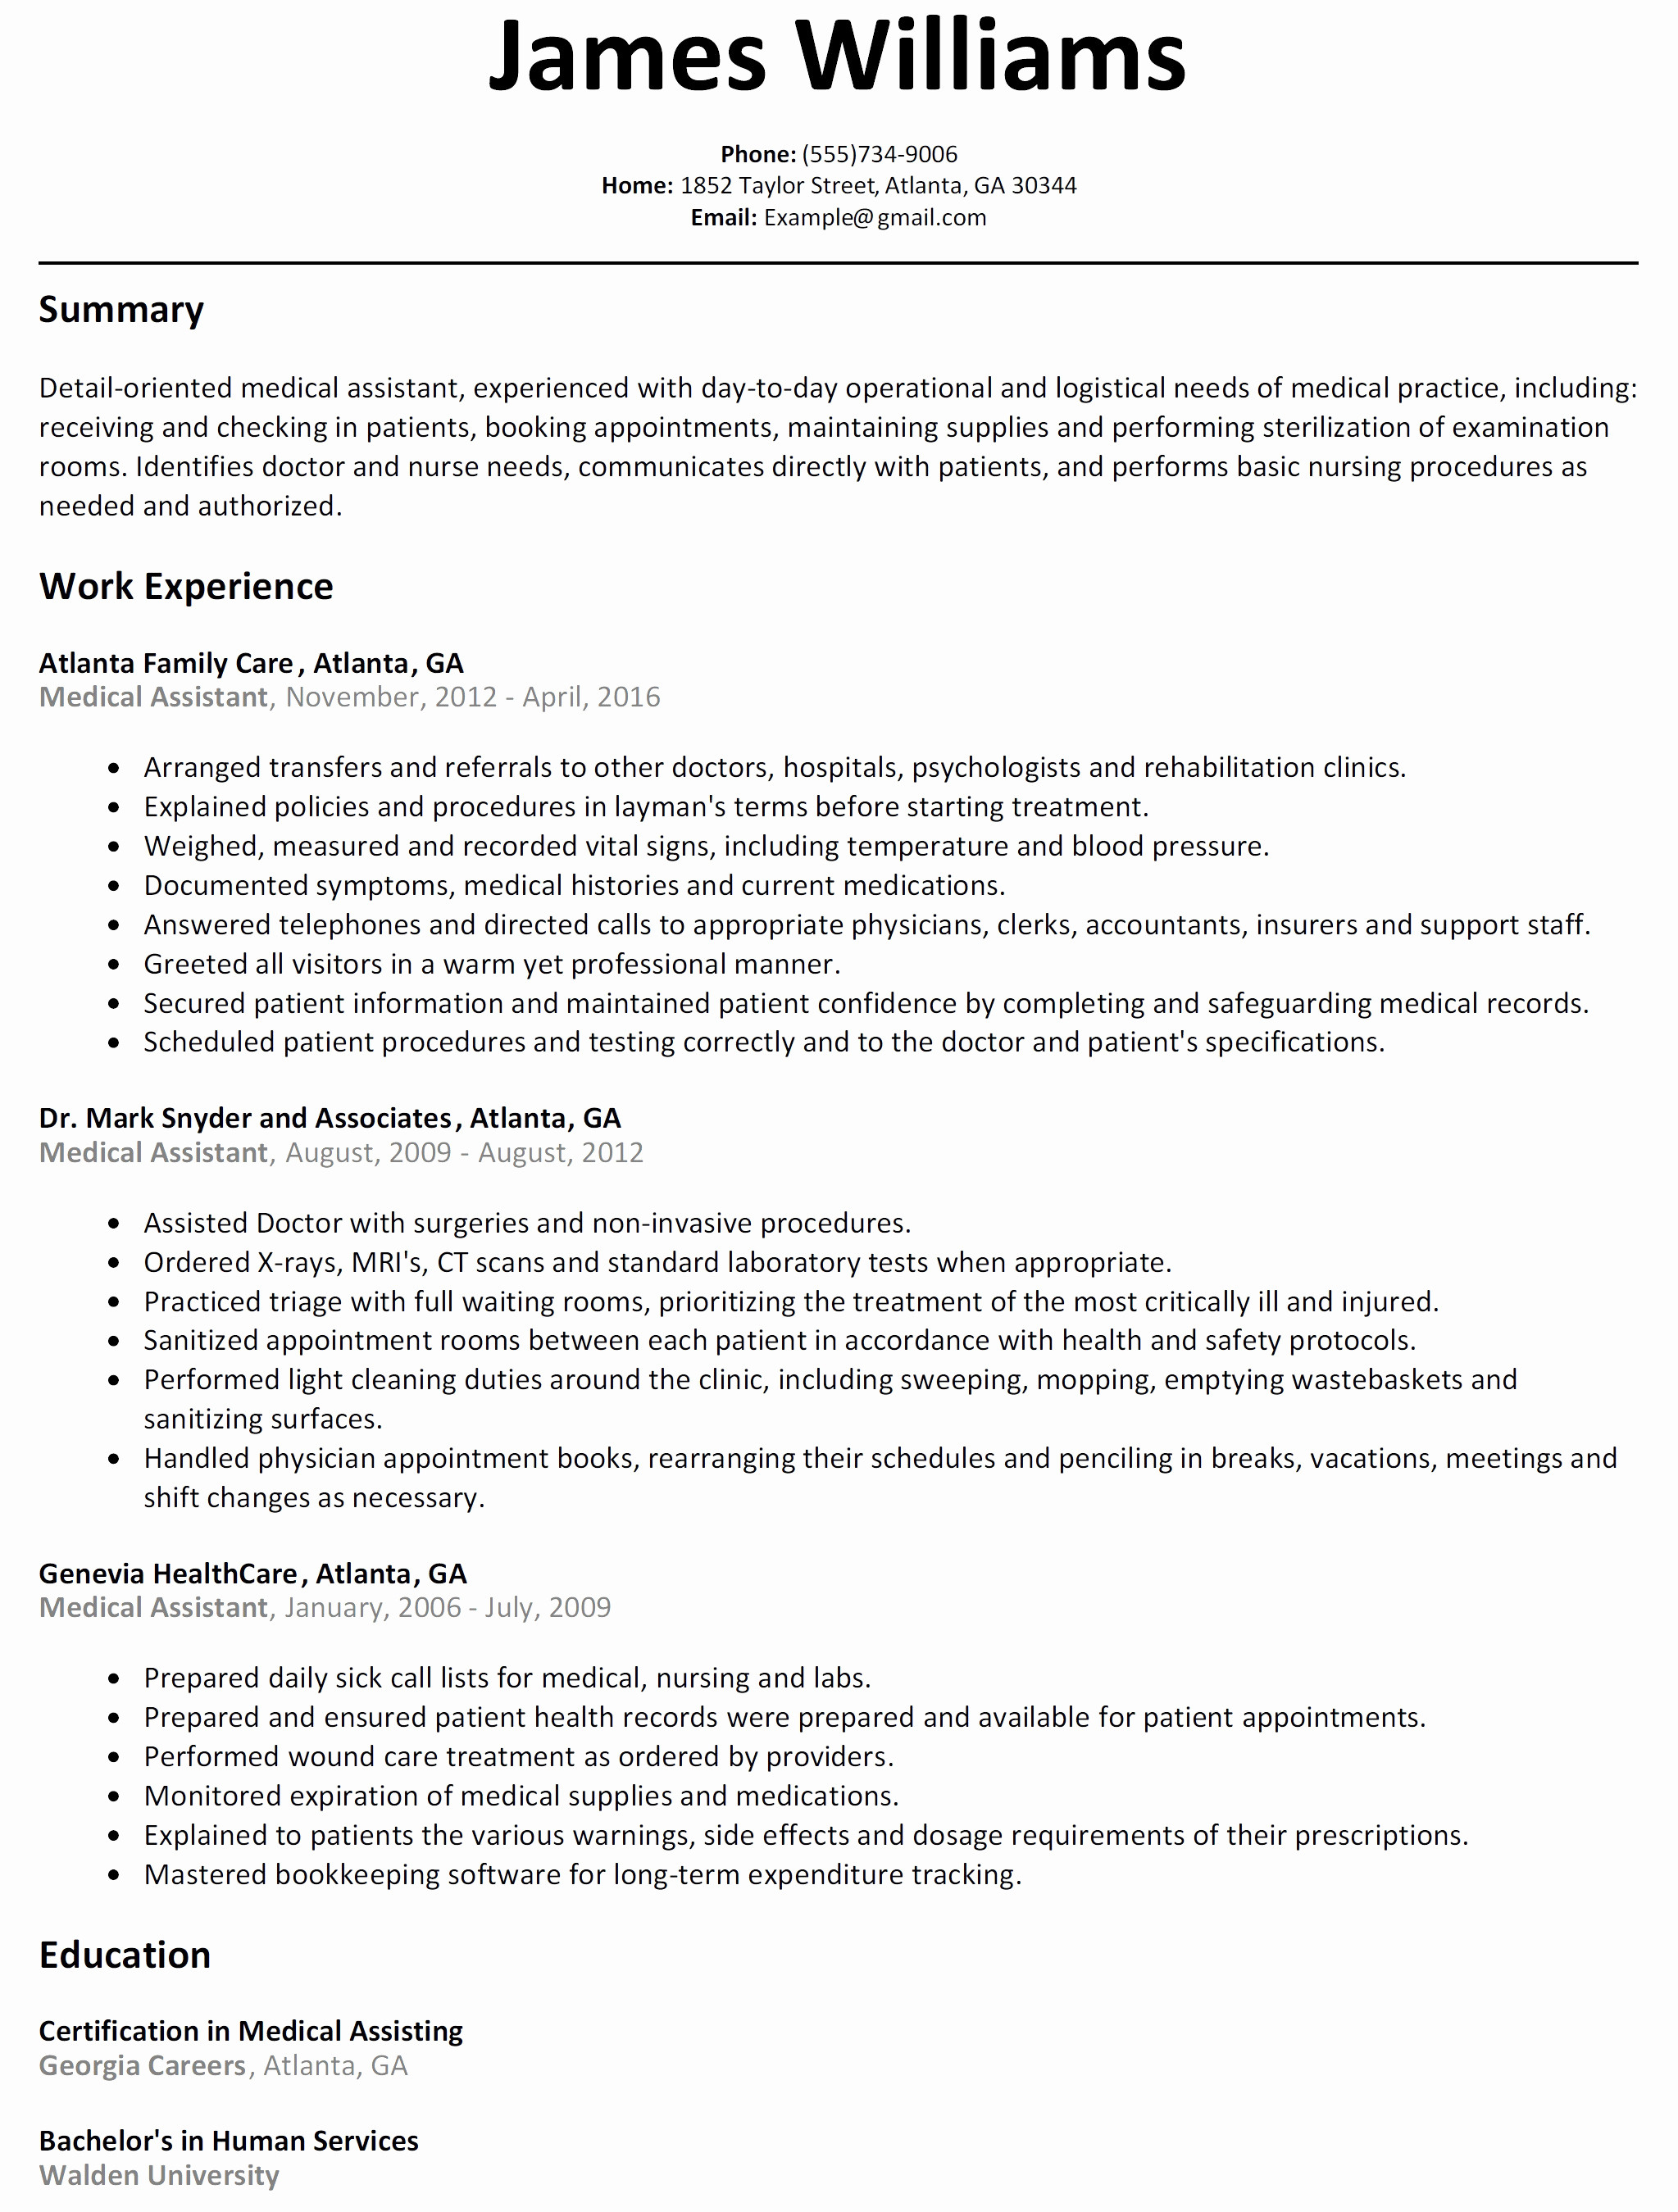 Resume Summary for someone with No Work Experience - Resume with No Work Exper Save No Work Experience Resume Template